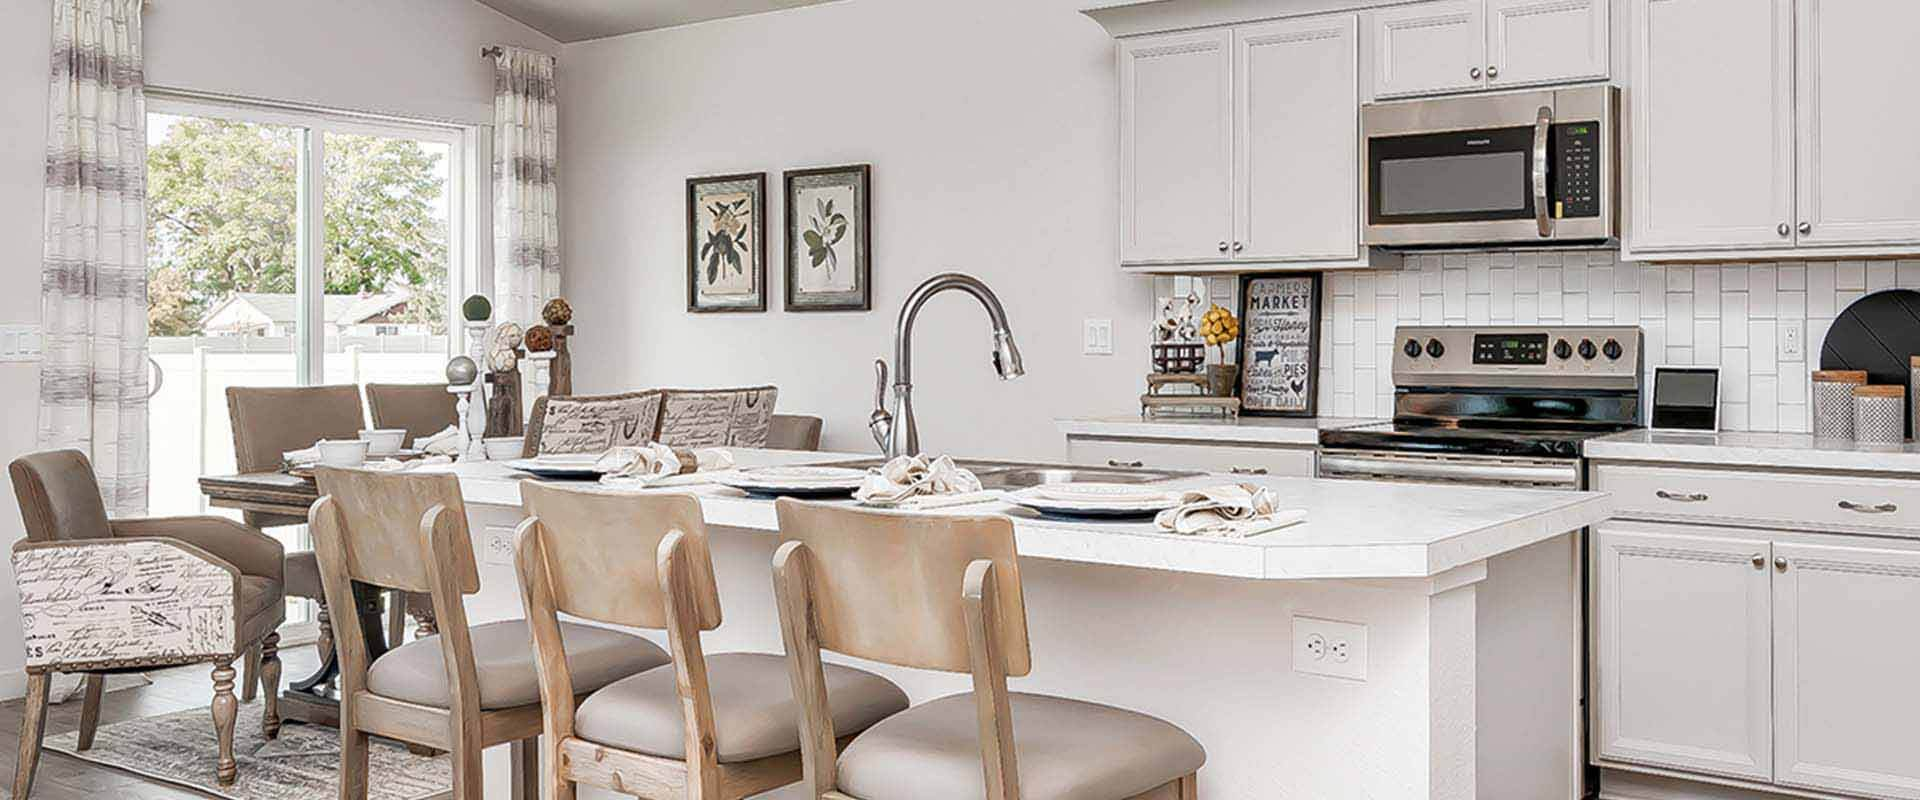 Brookfield-new-homes-boise-idaho-hubble-homes-kitchen-01.jpg